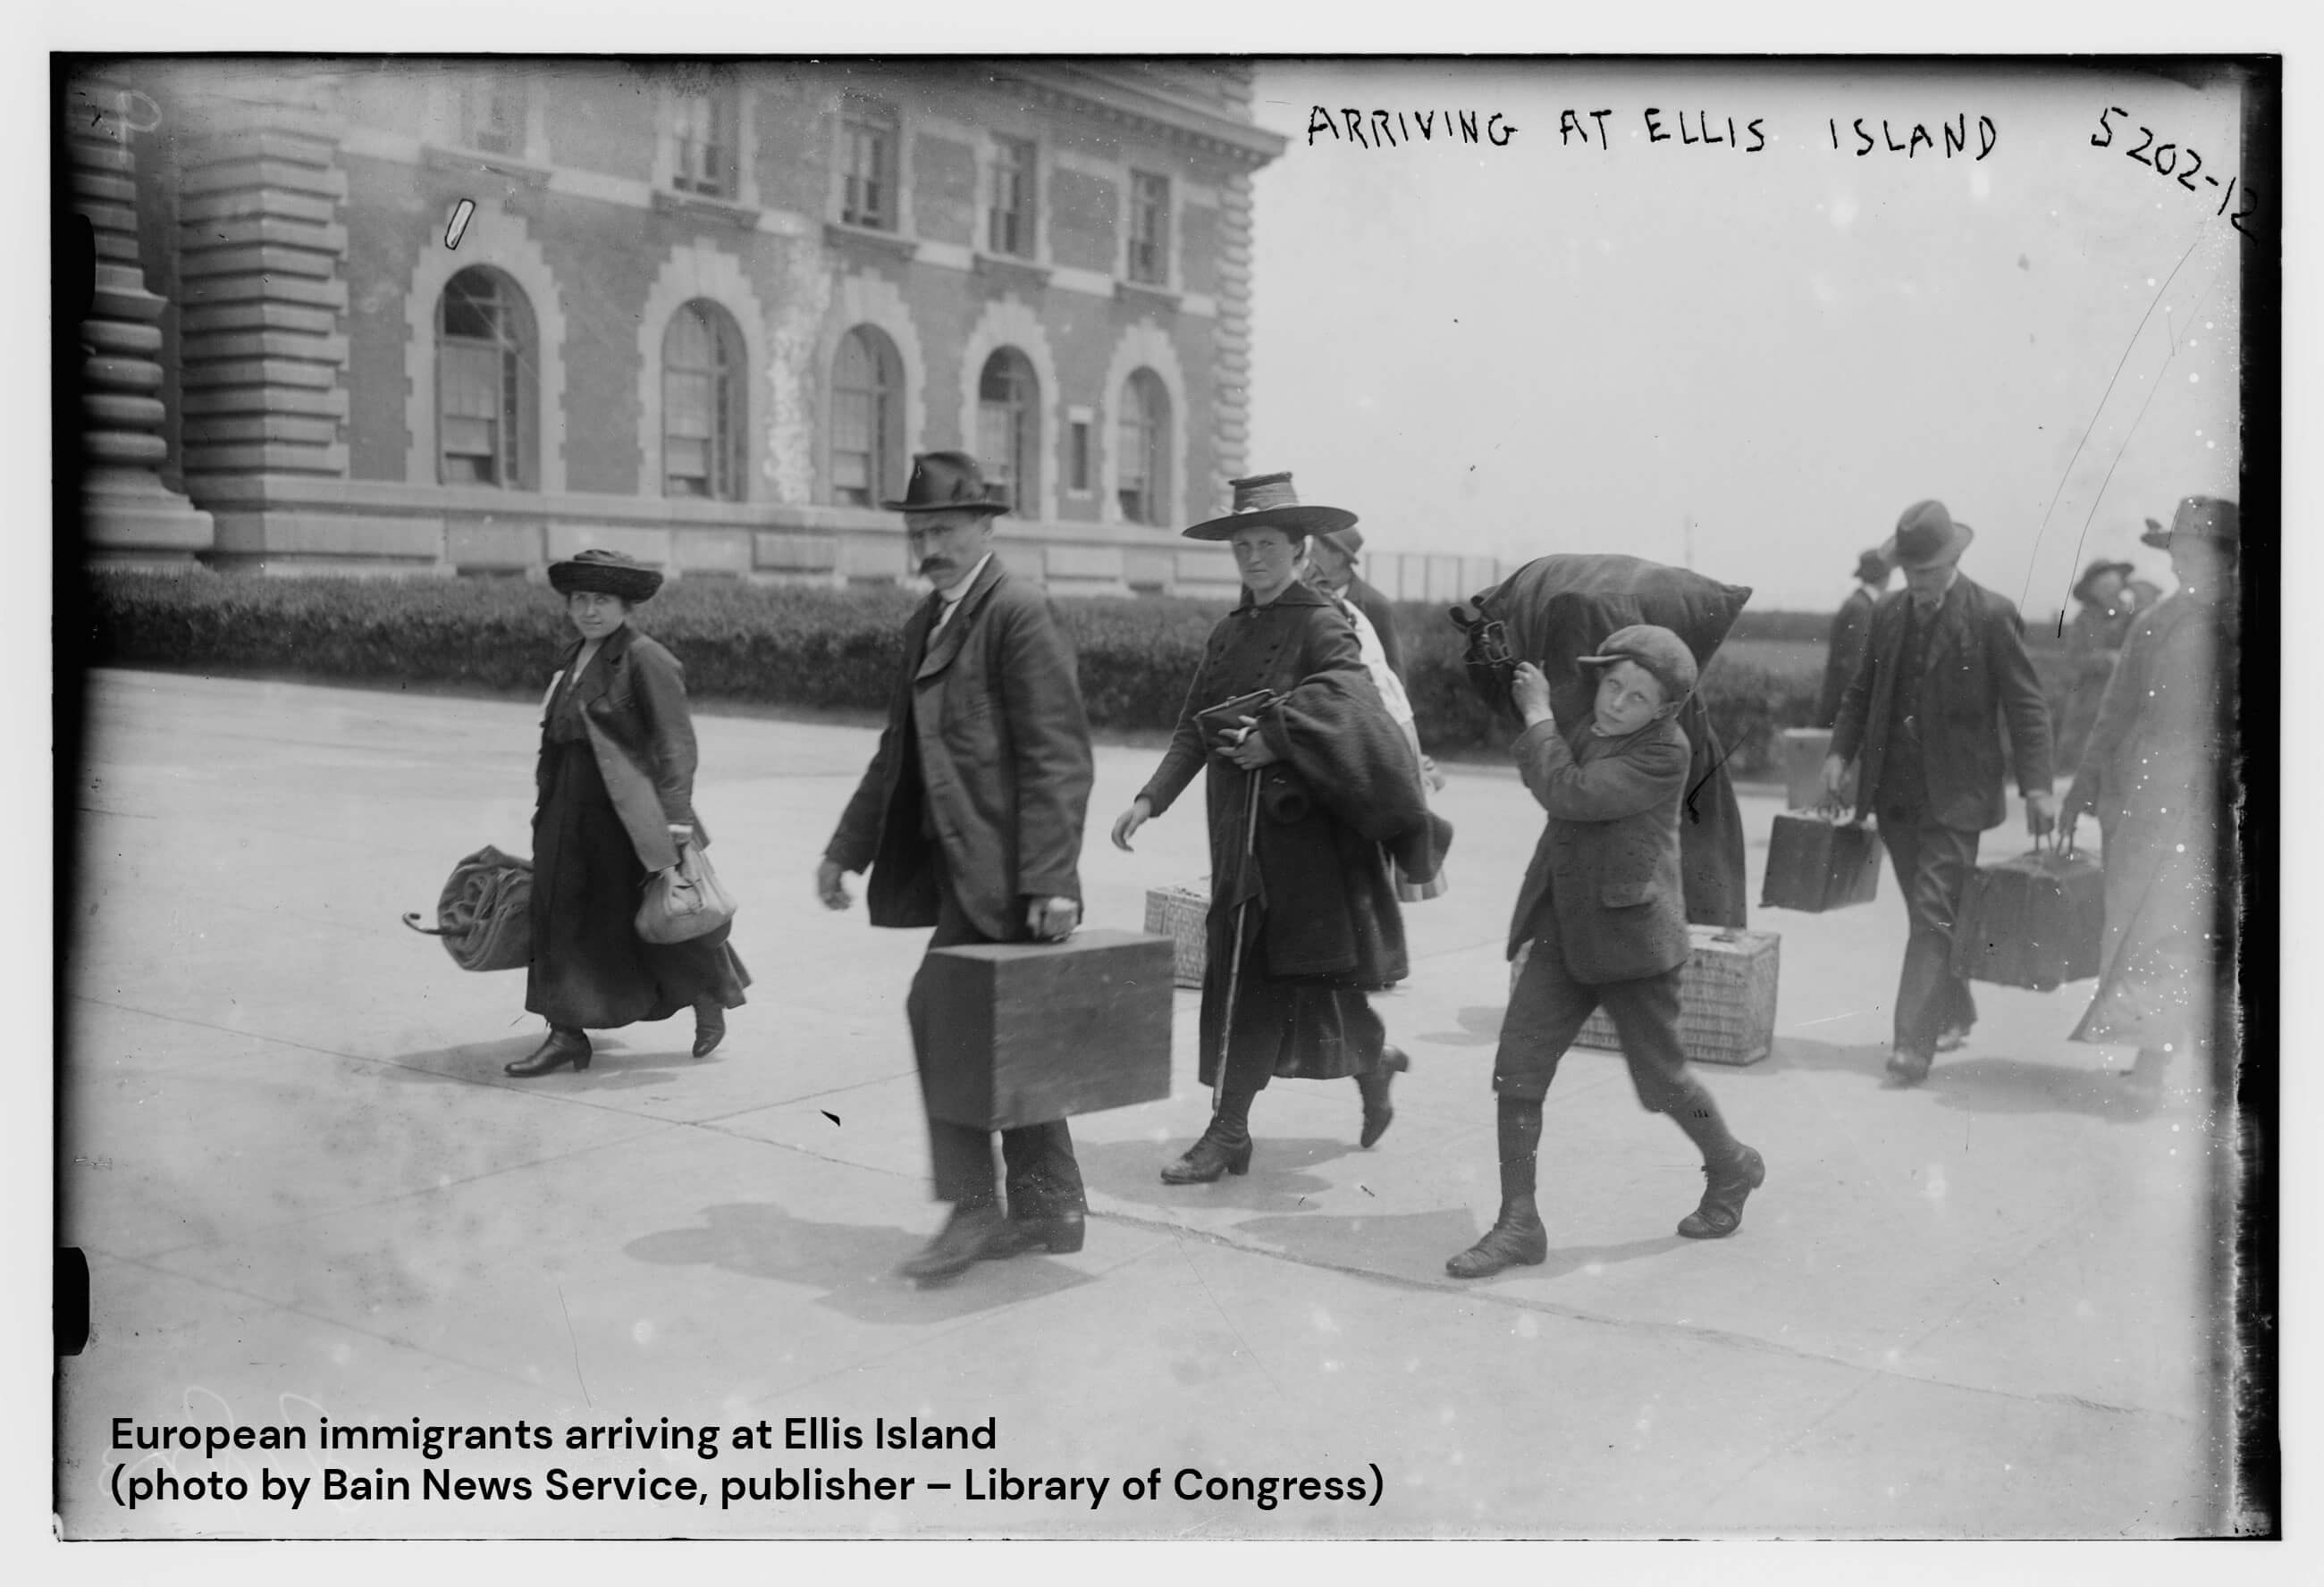 European immigrants arriving at Ellis Island with suitcases.